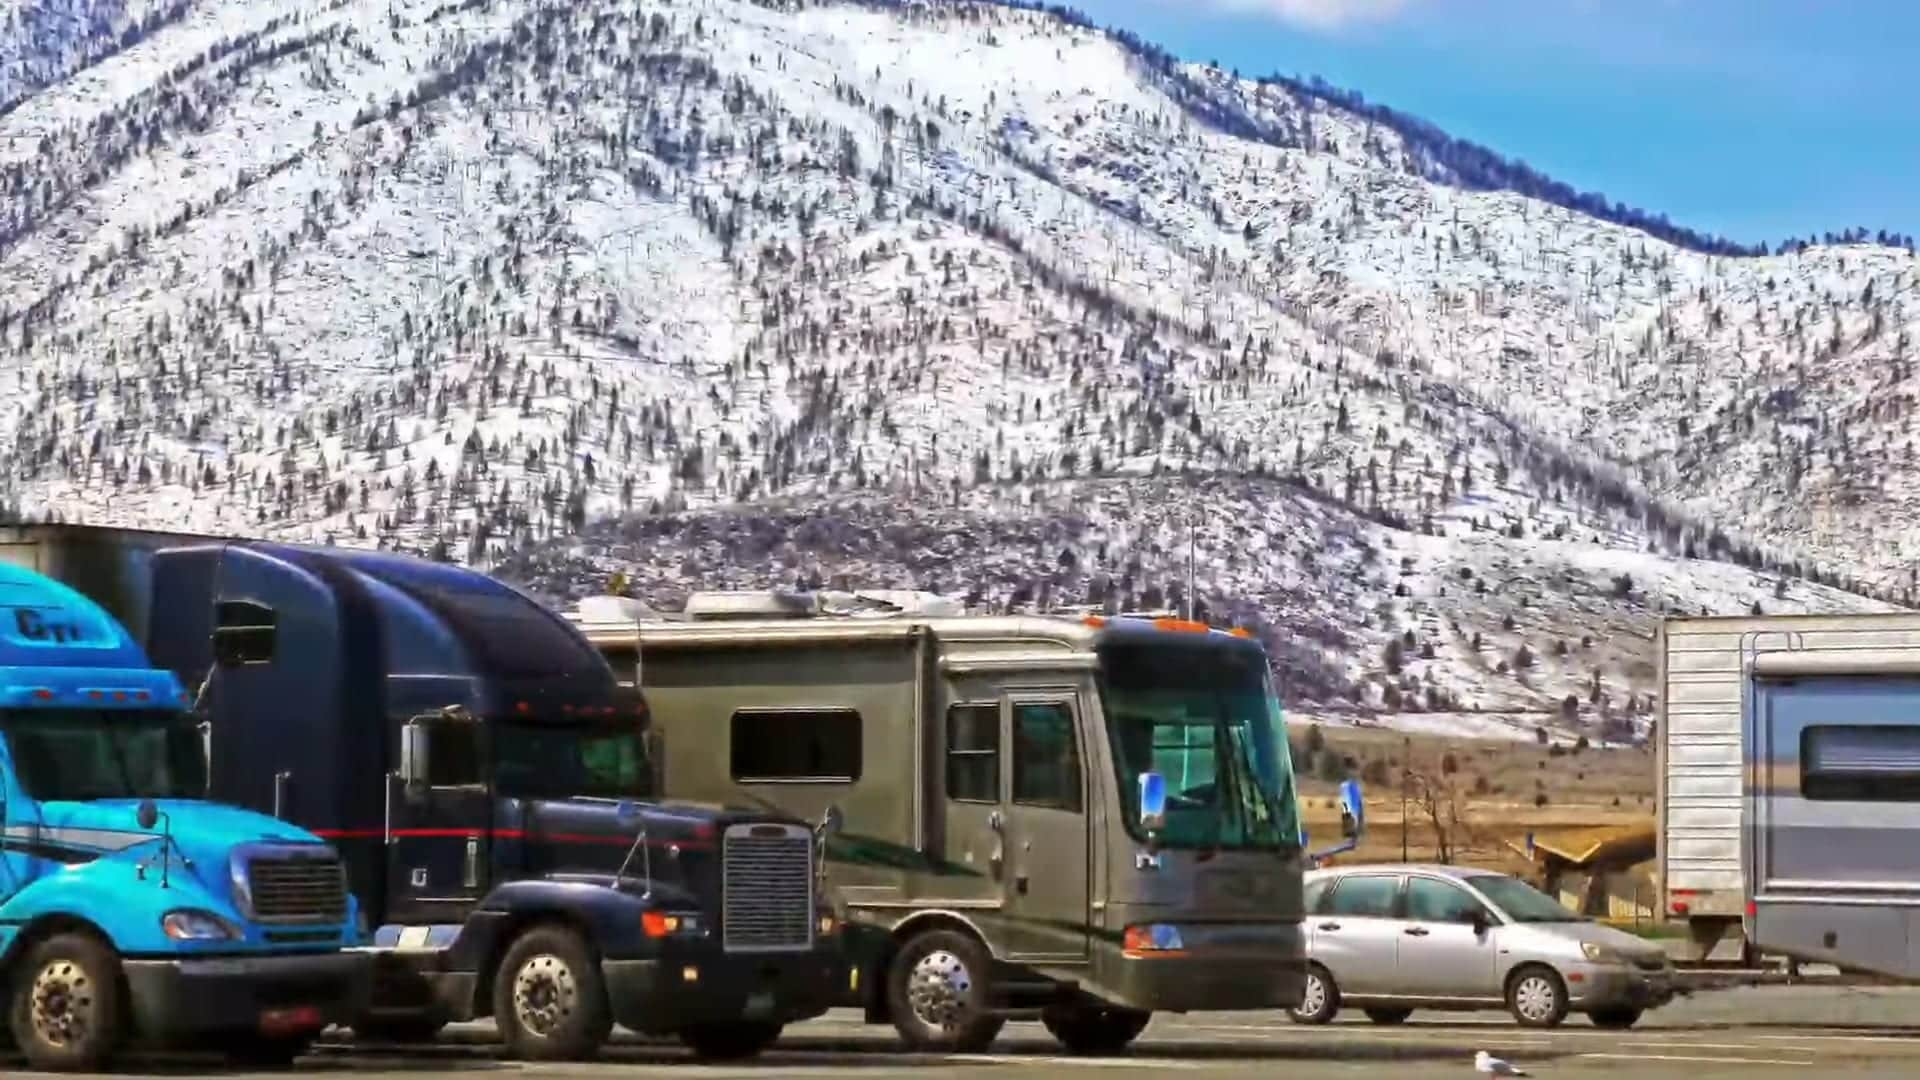 Truck stops offer free overnight rv parking for weary travelers.